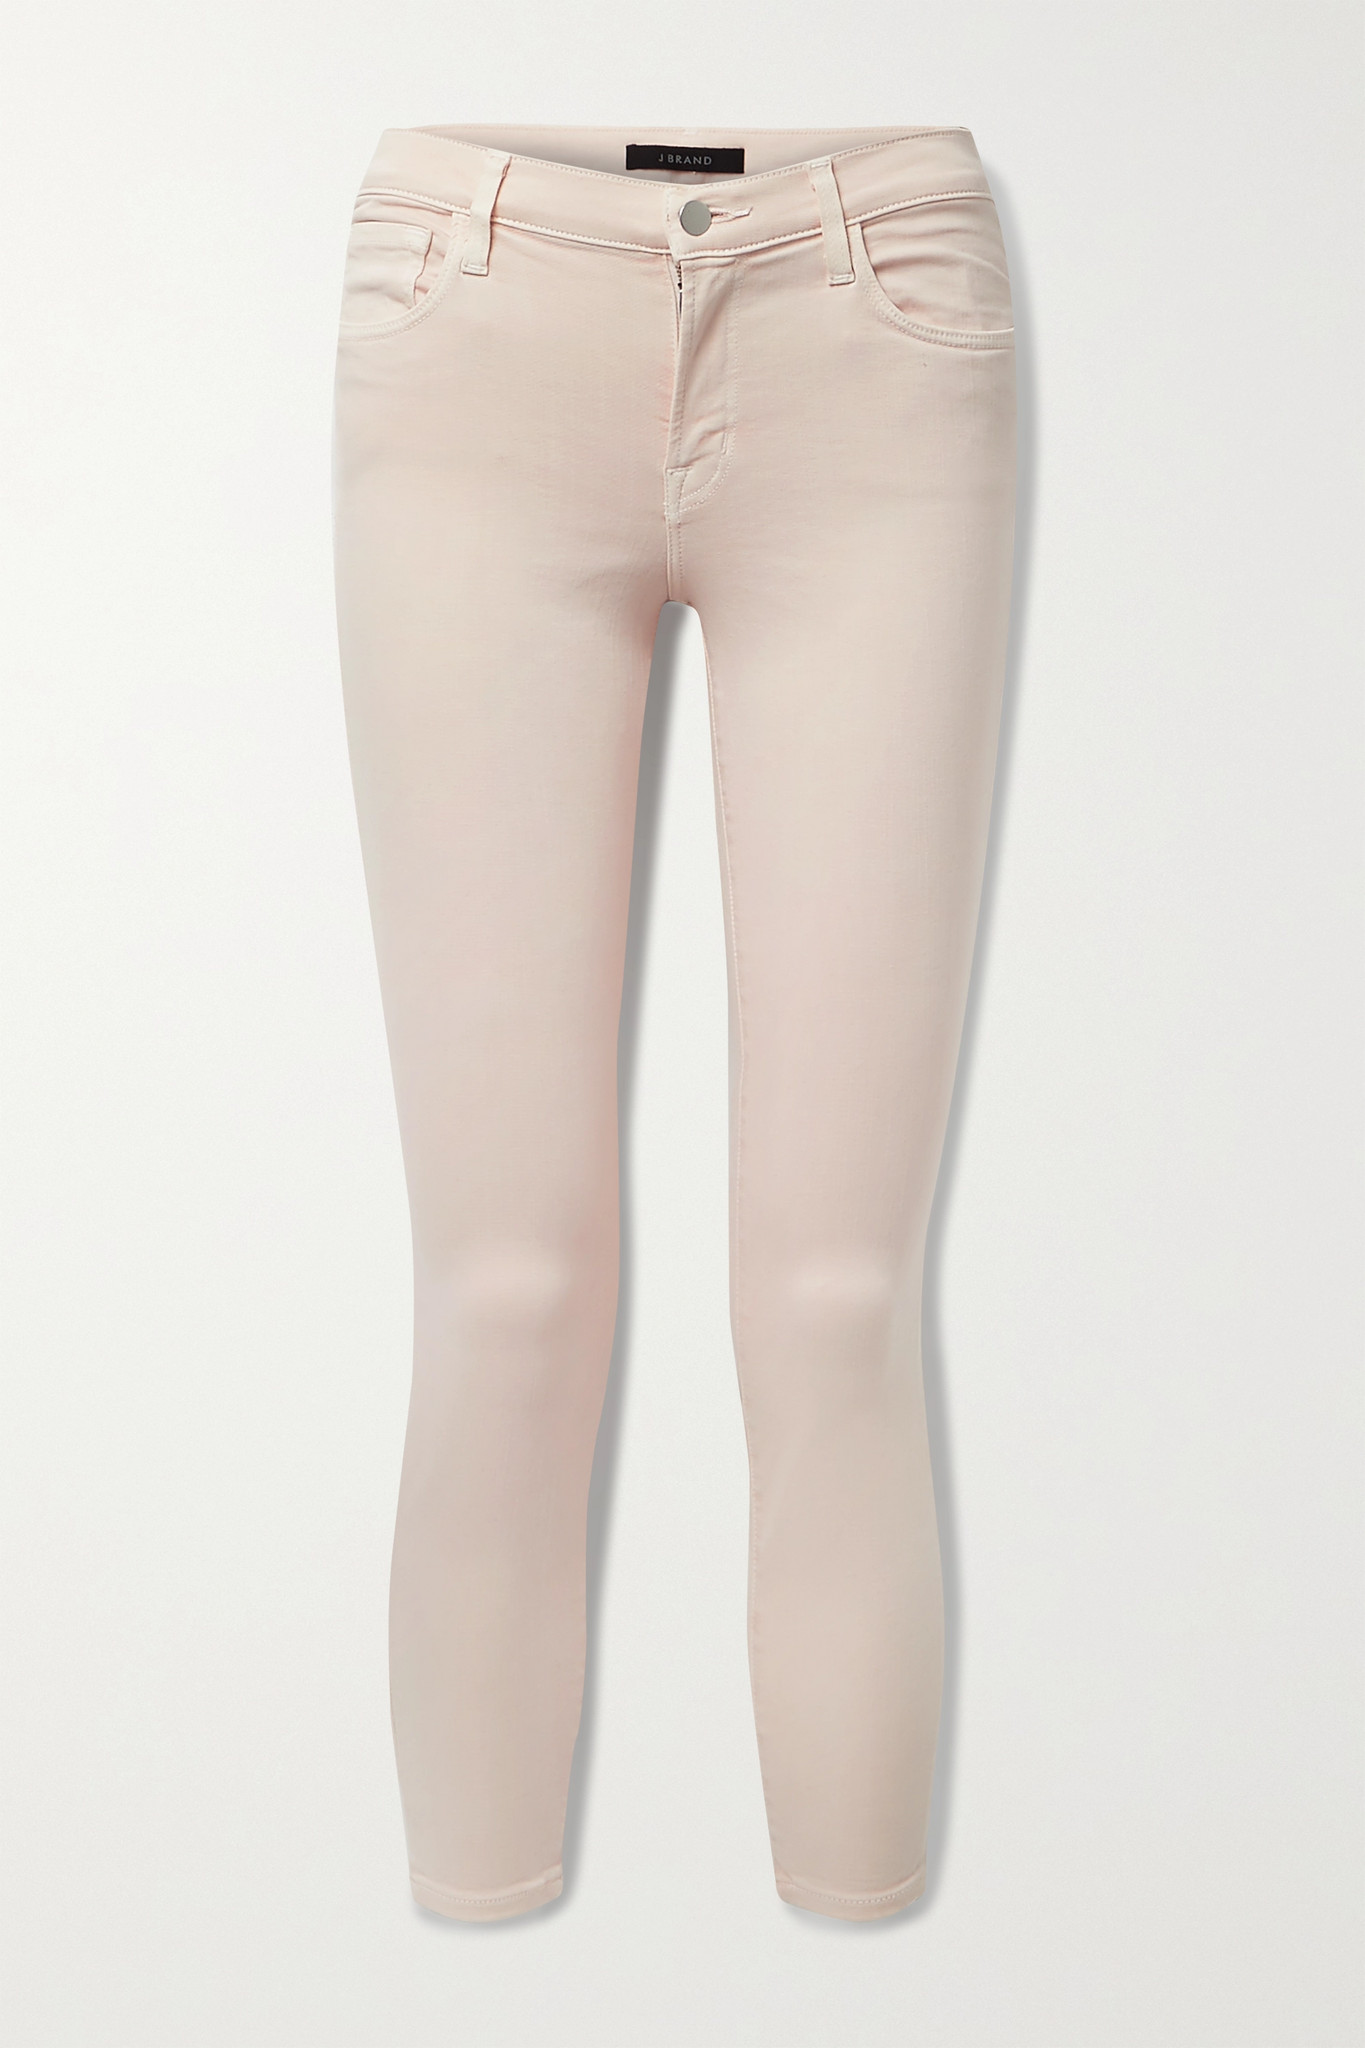 J BRAND - 835 Cropped Mid-rise Skinny Jeans - Pink - 27